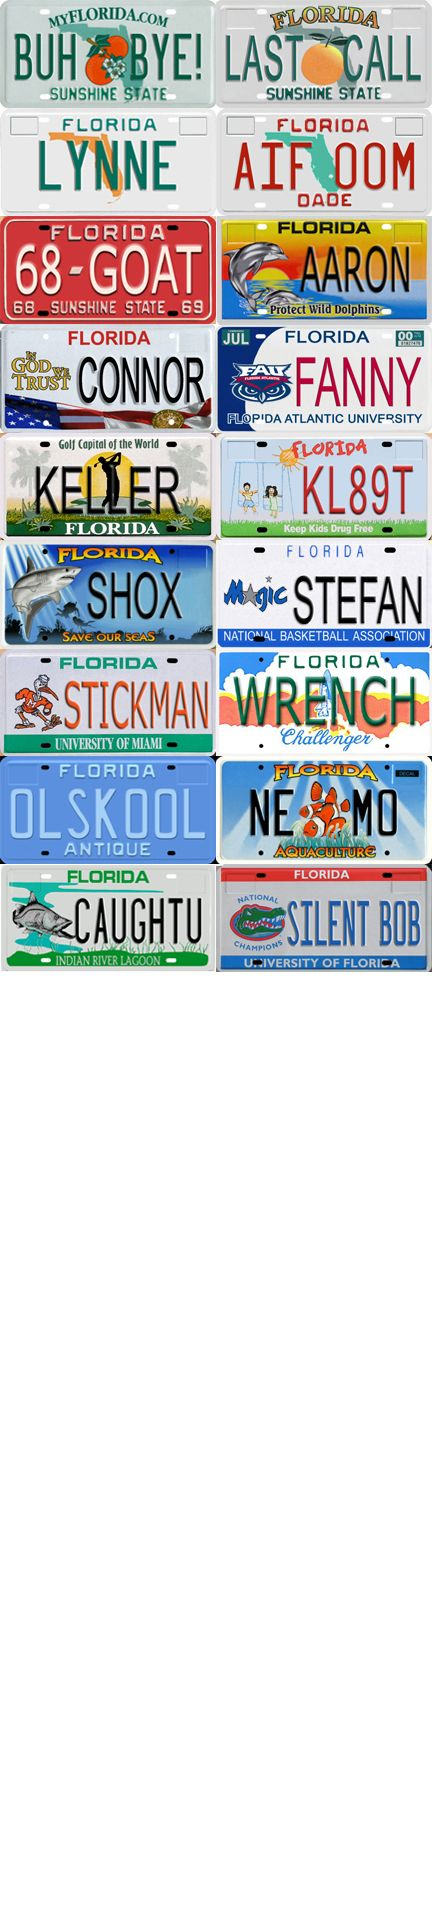 118 Best Images About Personalized License Plate Ideas On Pinterest Cars Chevy And Licence